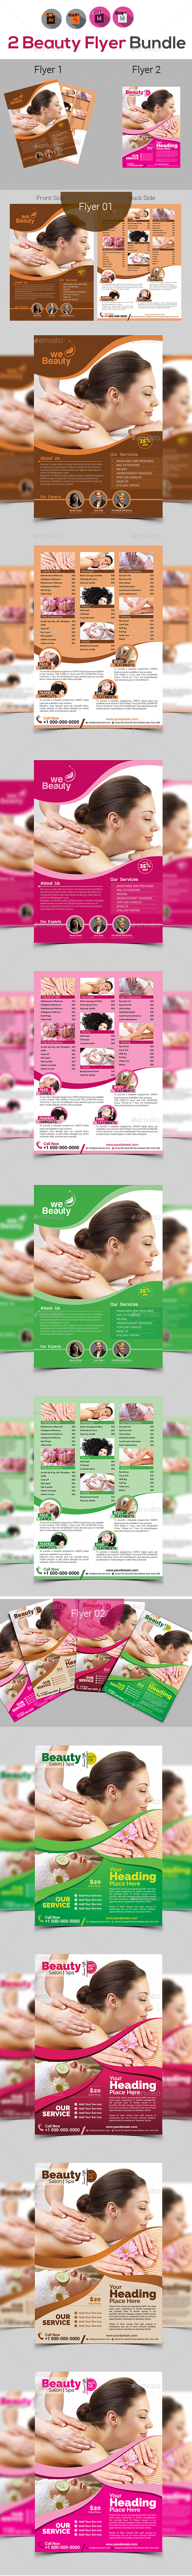 Spa & Beauty Flyers Templates - Corporate Flyers